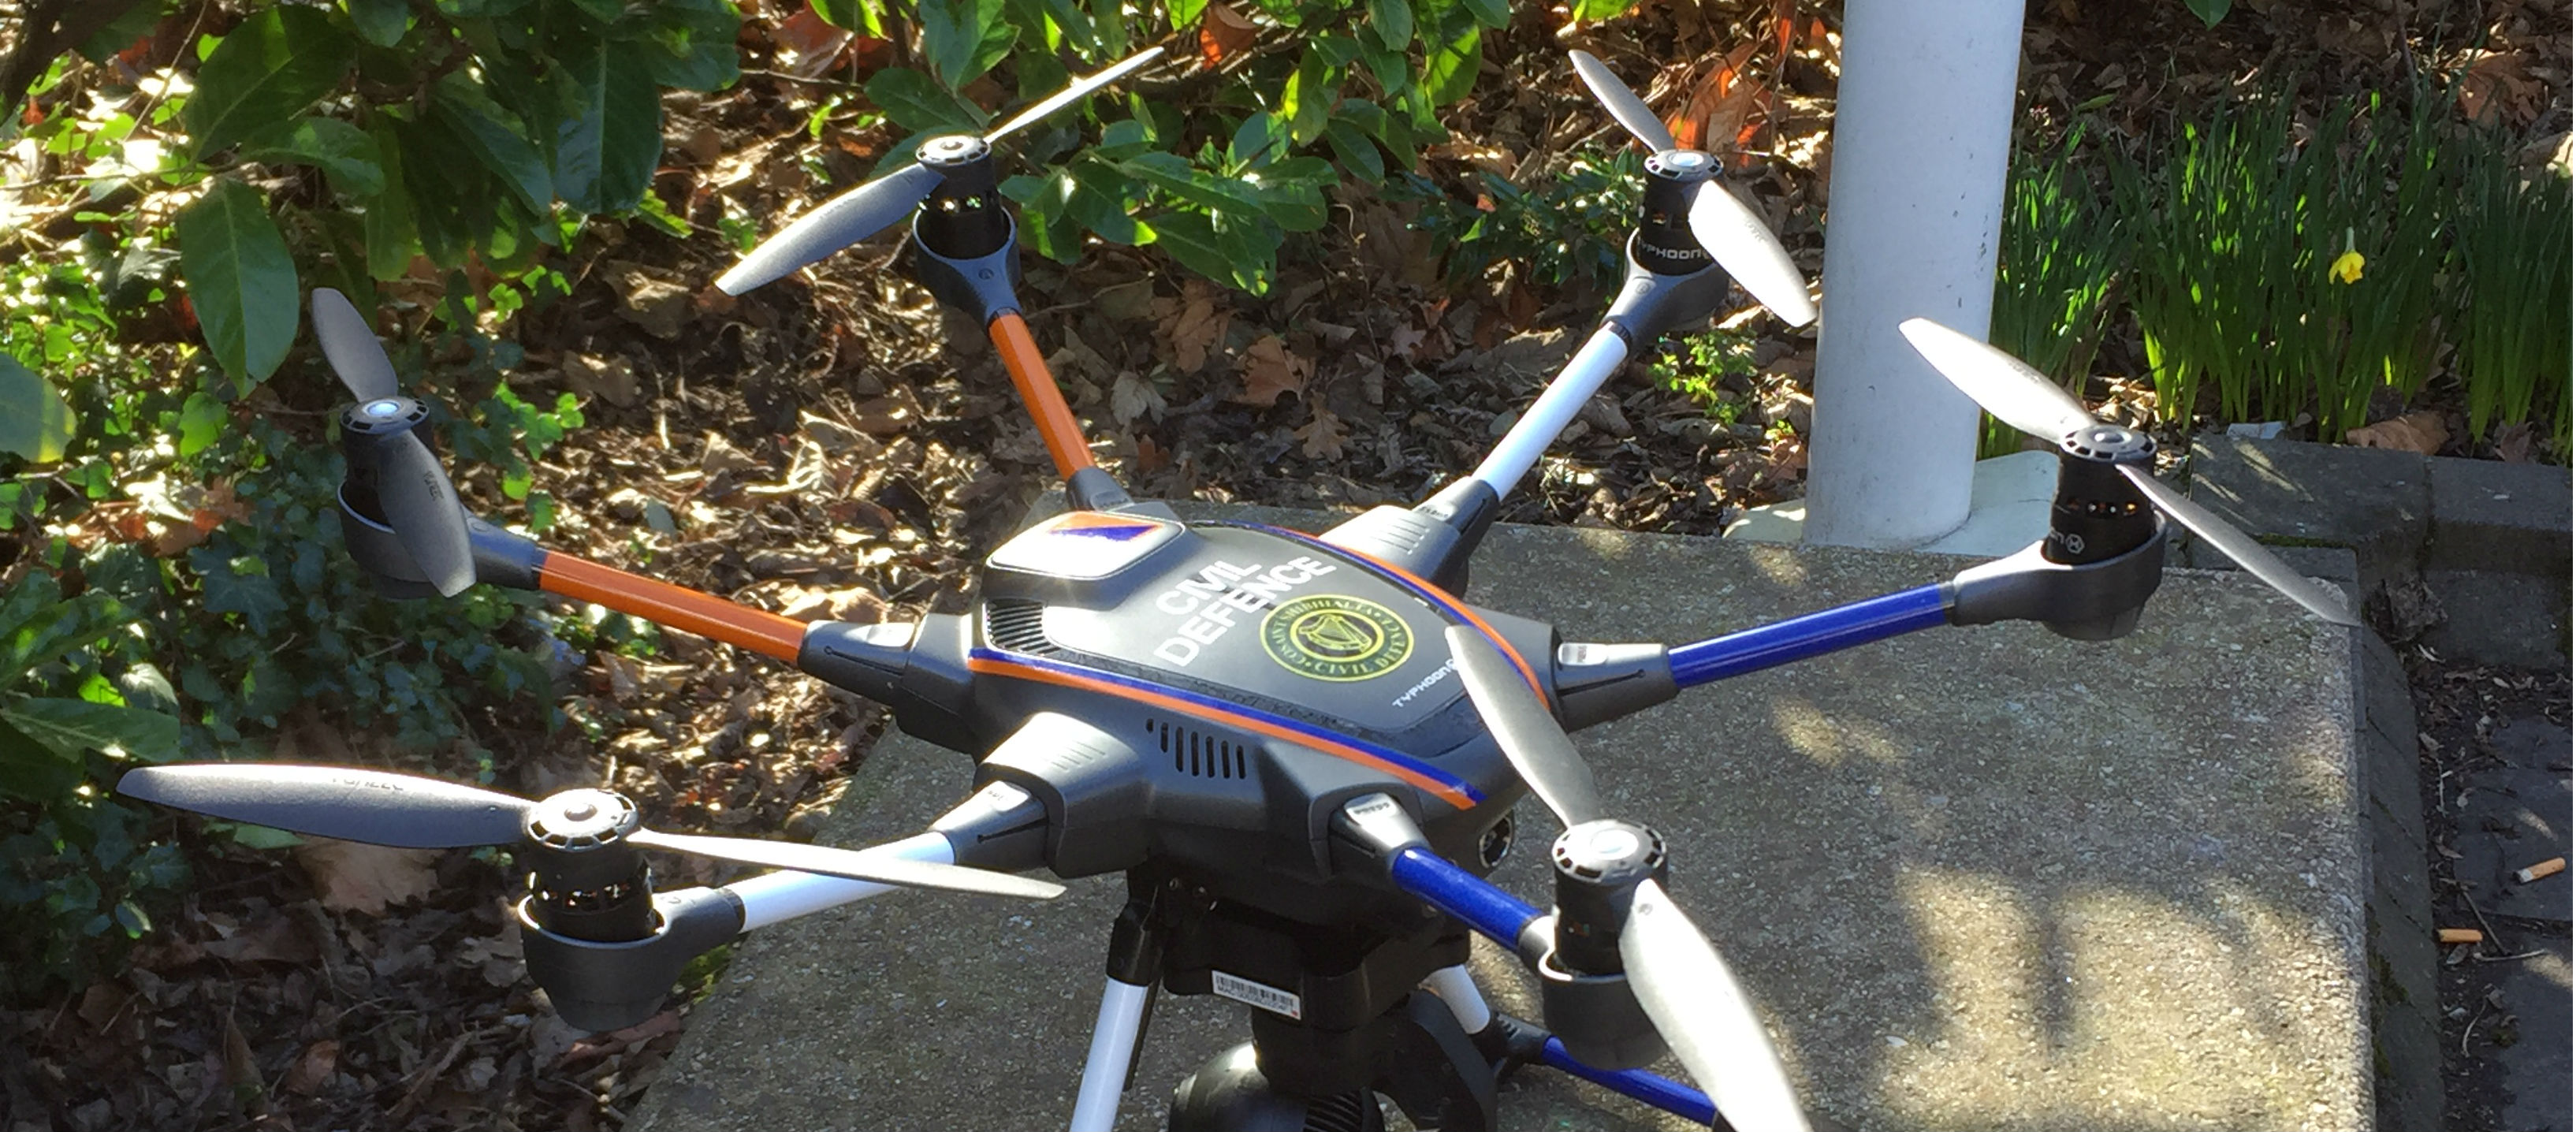 Drones To Patrol Roads And Trams